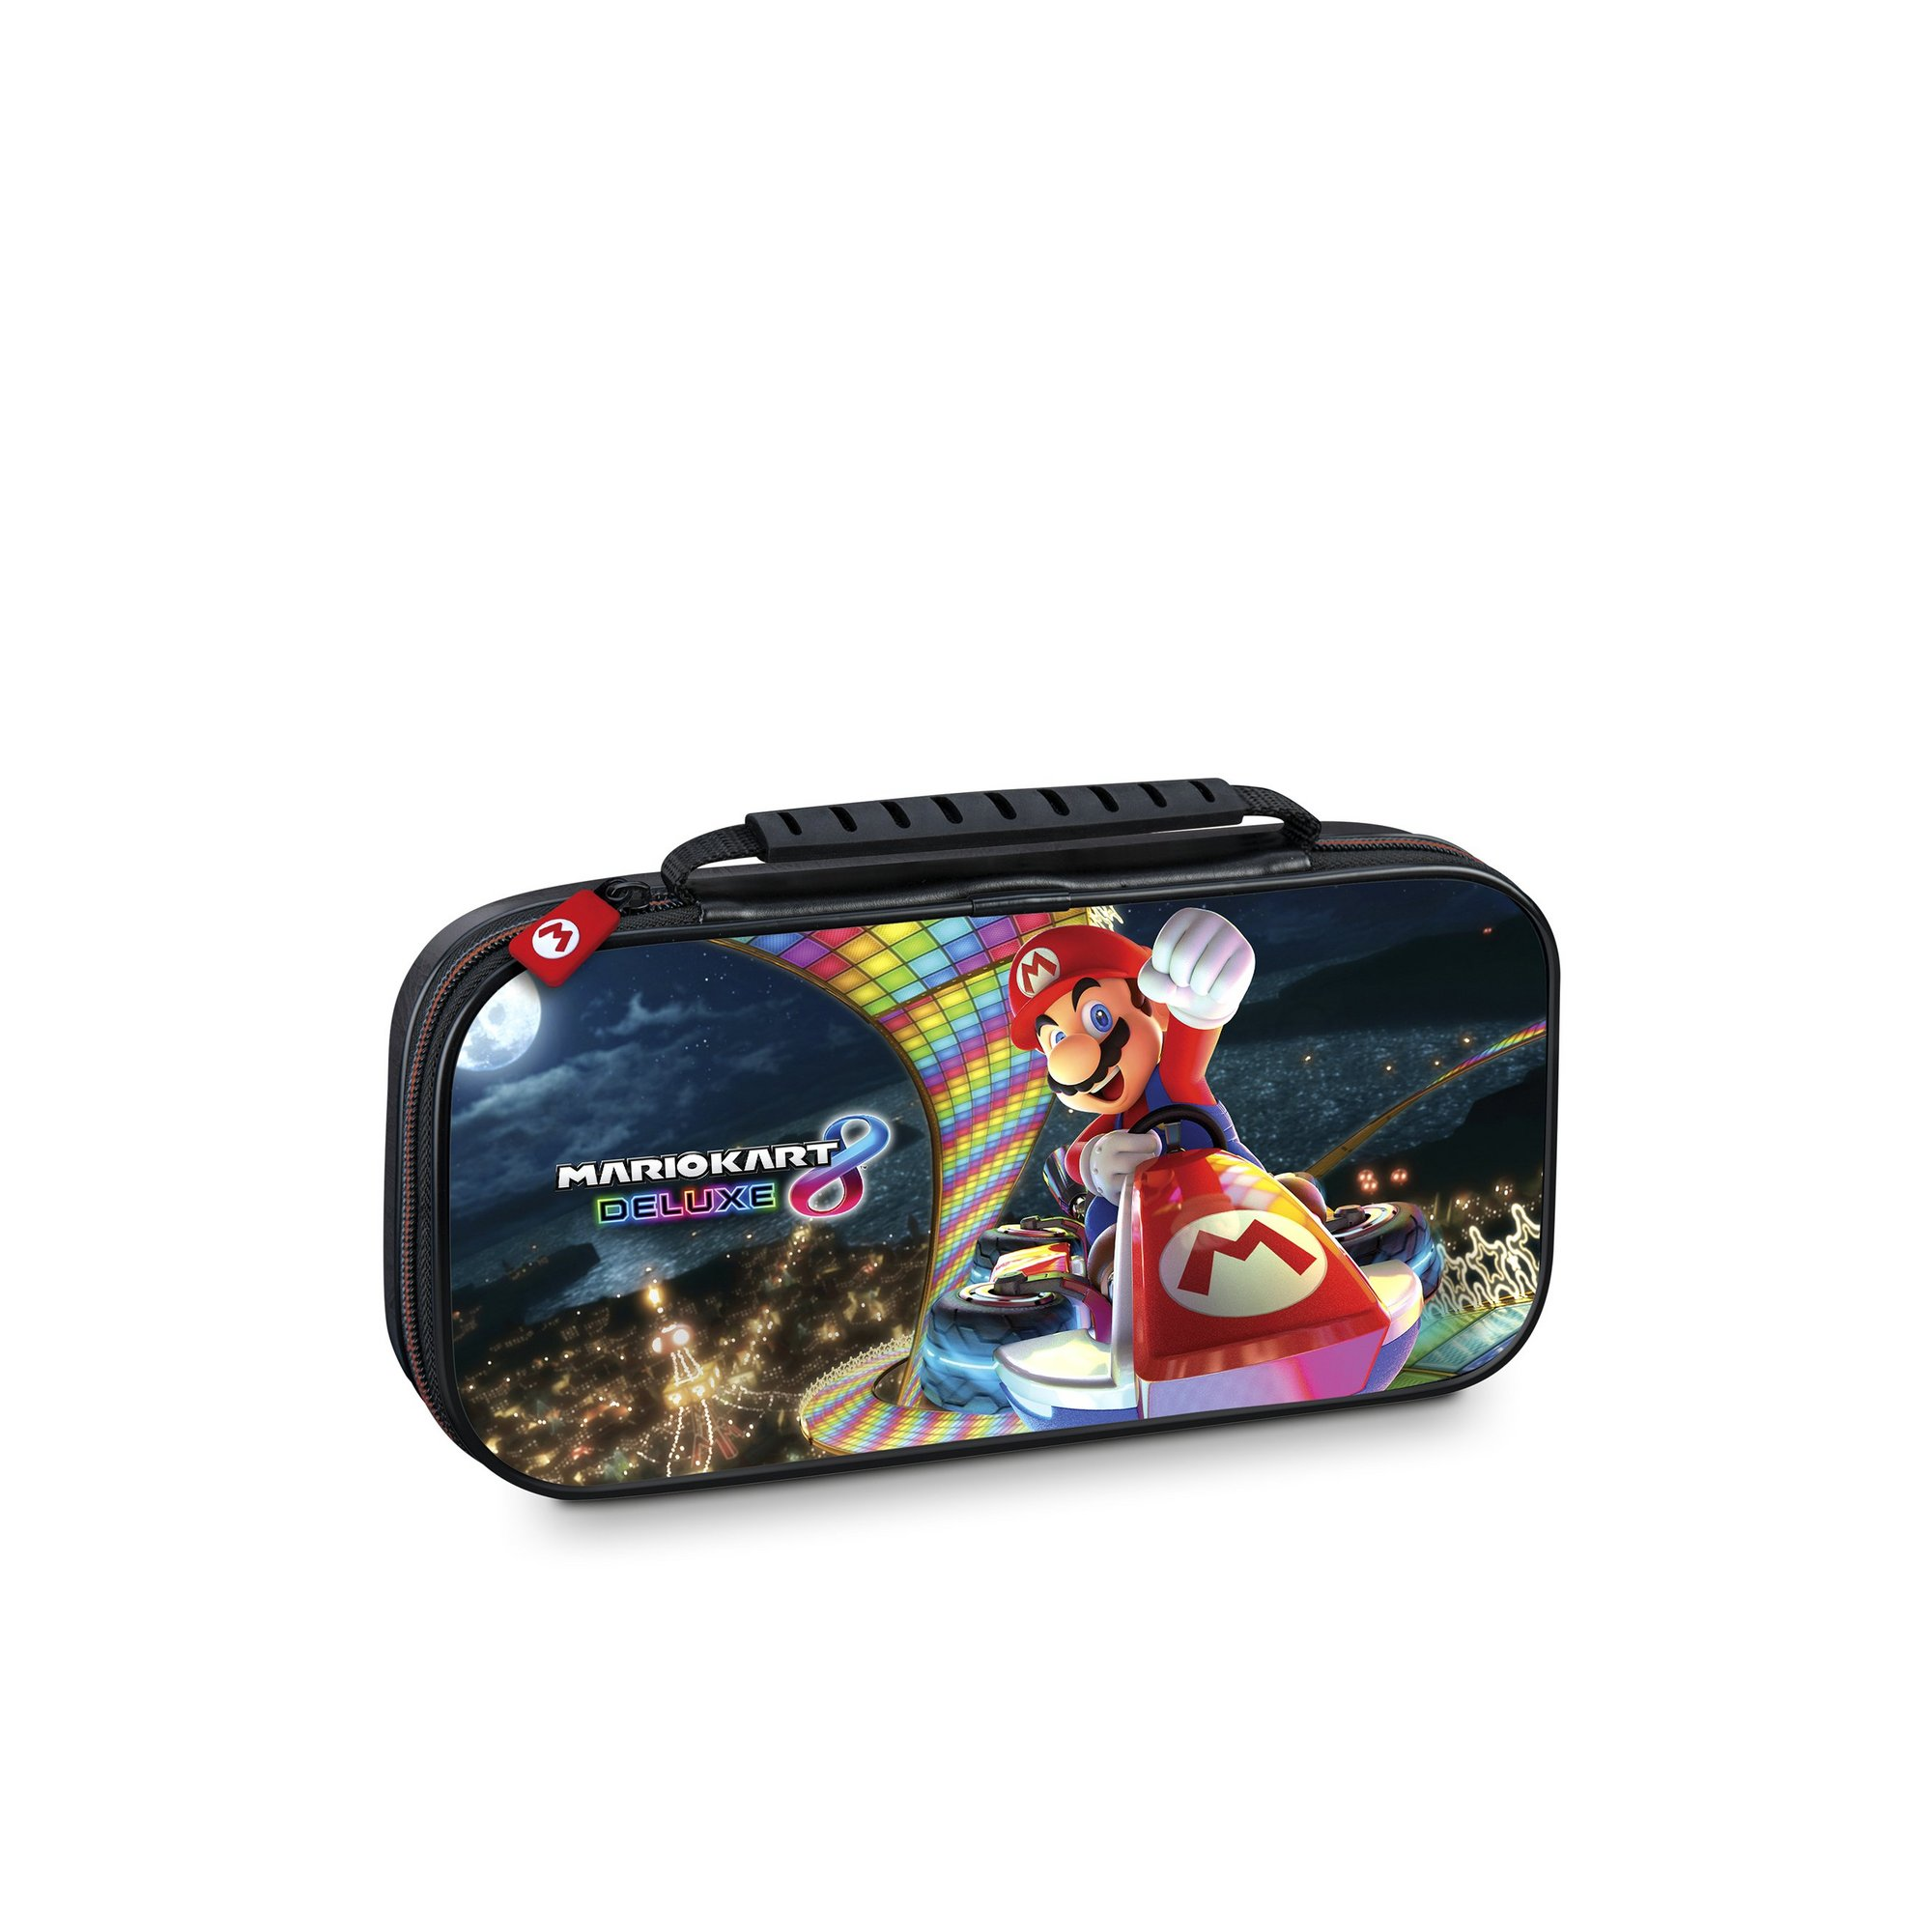 Image of Official Mario Kart Travel Case For Nintendo Switch